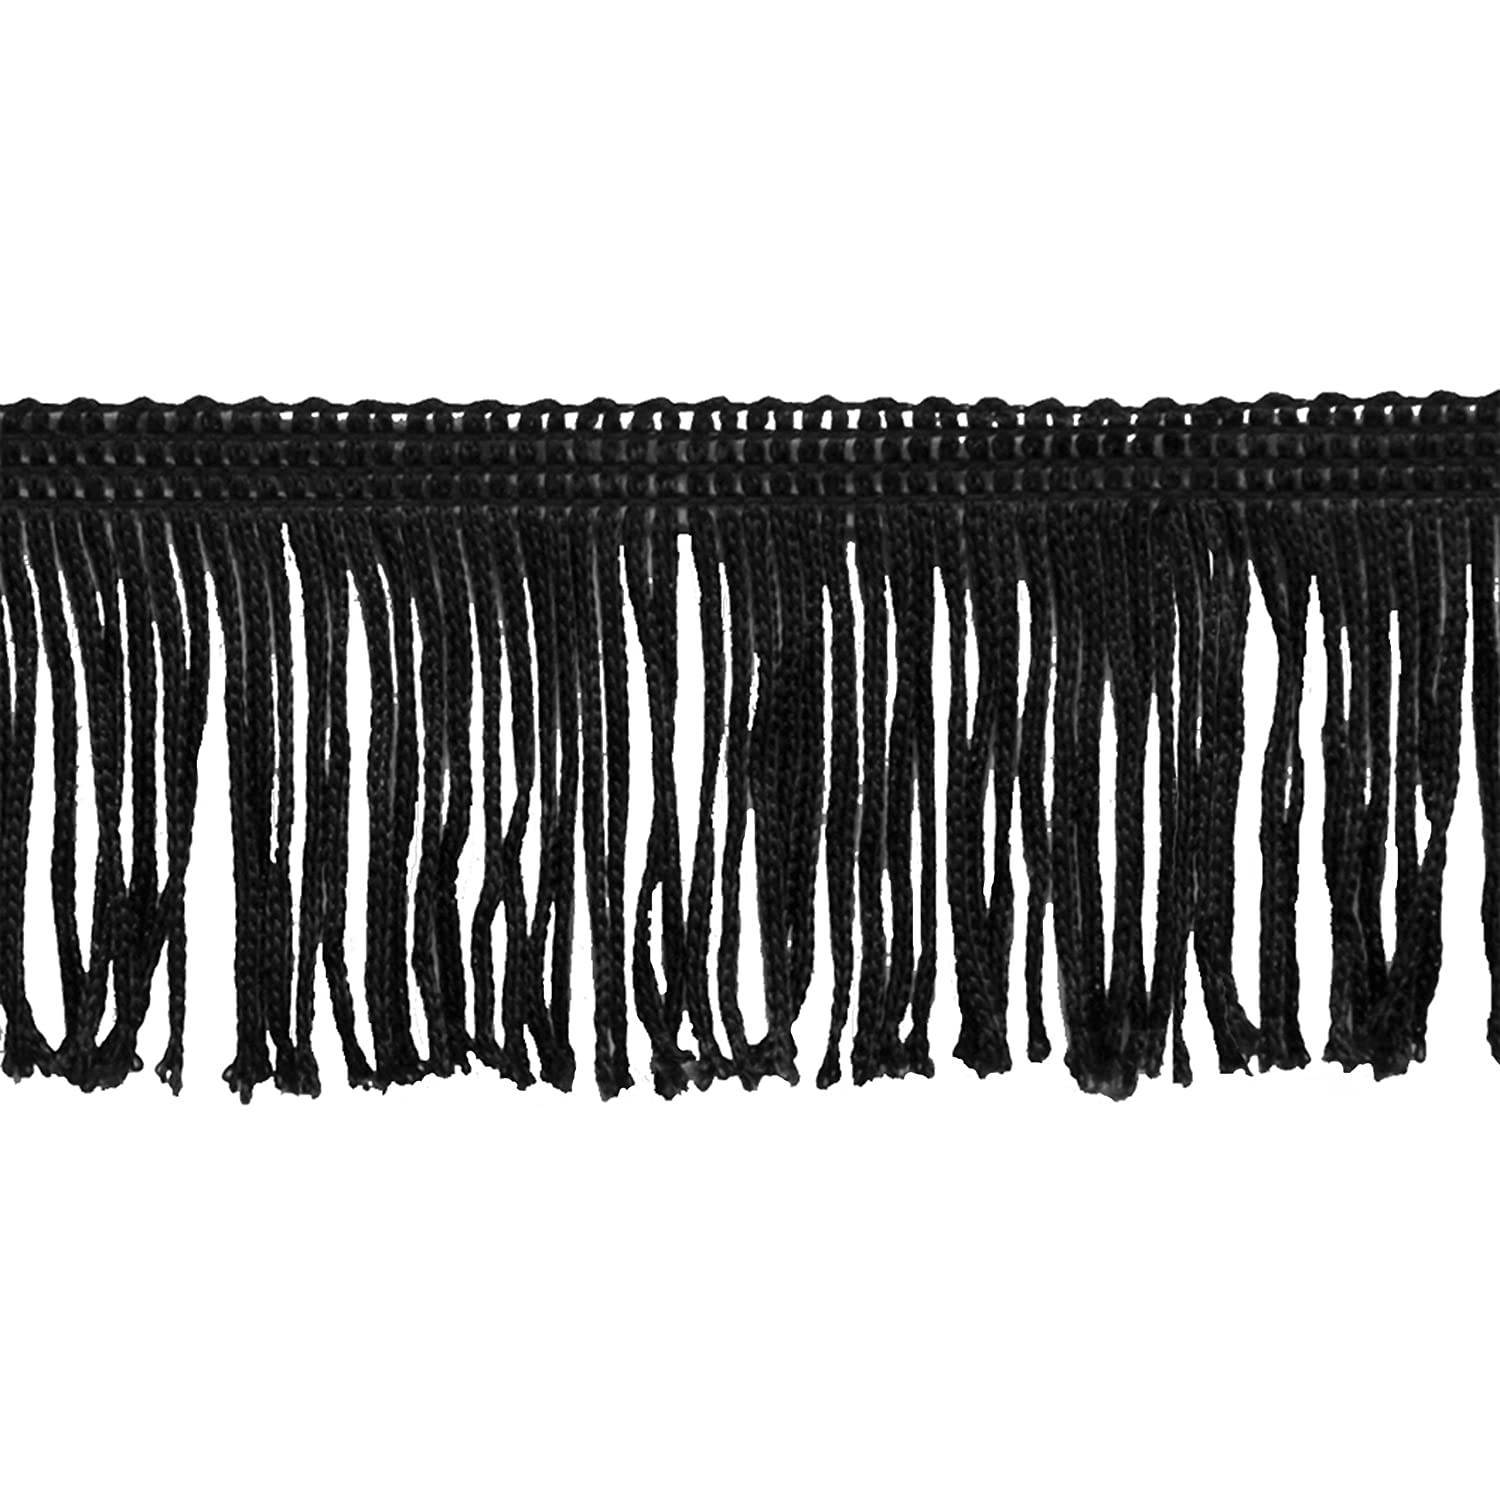 Brushed Fringe 2-Inch Long Chainette Polyester Fringe in 10 Yard Rolls P-7043 in Color 02 Black Belagio Enterprises P-7043- 02 BLACK